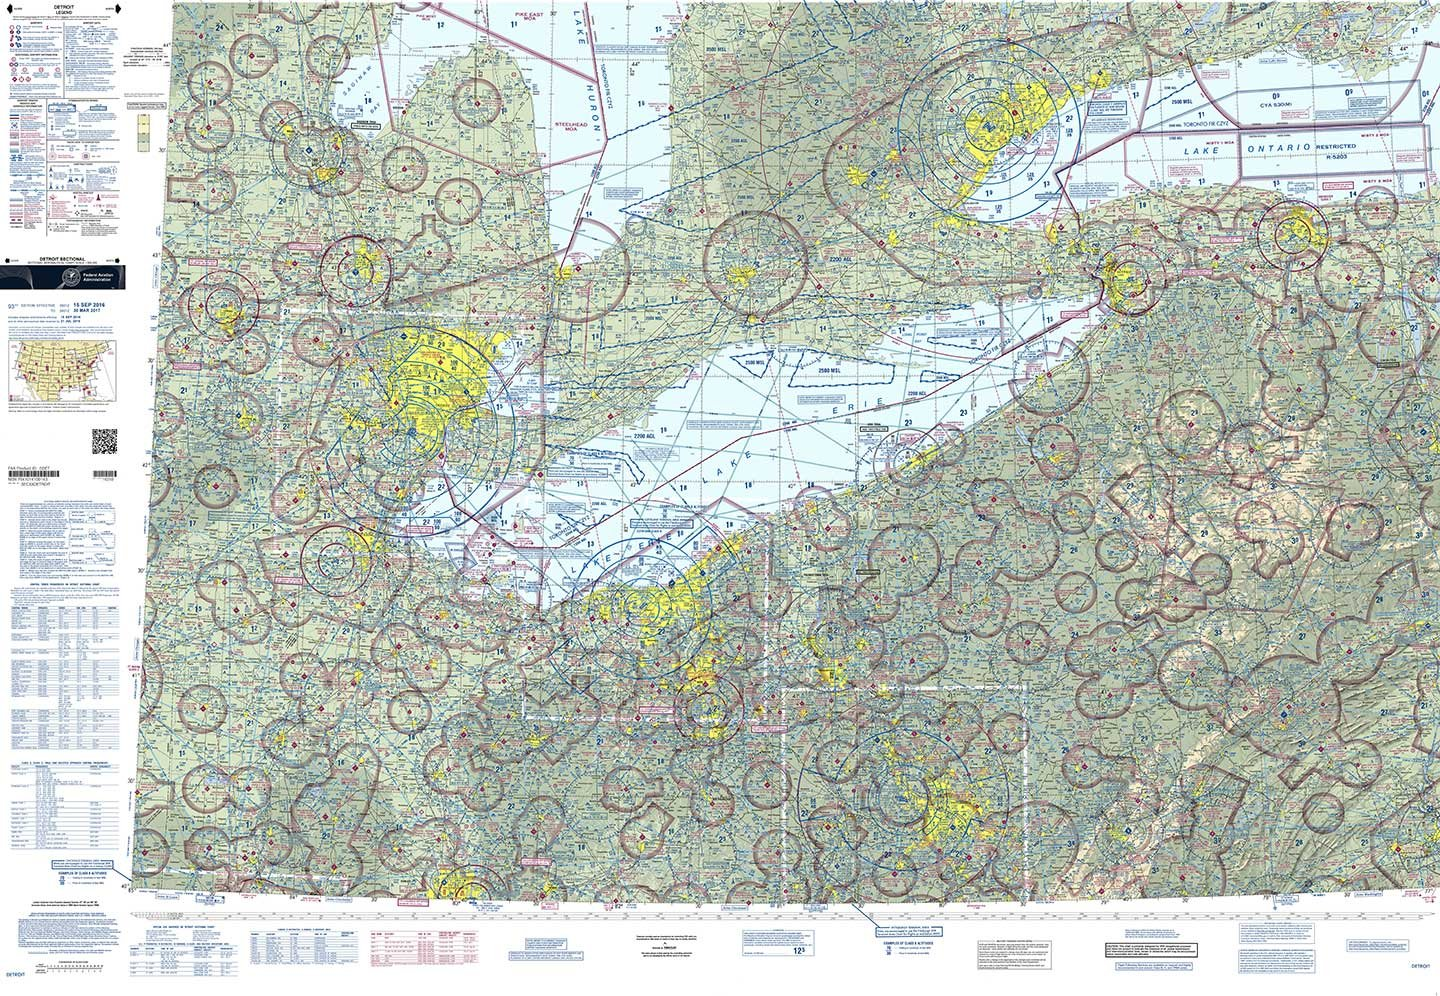 Sectional Air Map Amazon.com: FAA Chart: VFR Sectional DETROIT SDET (Current Edition